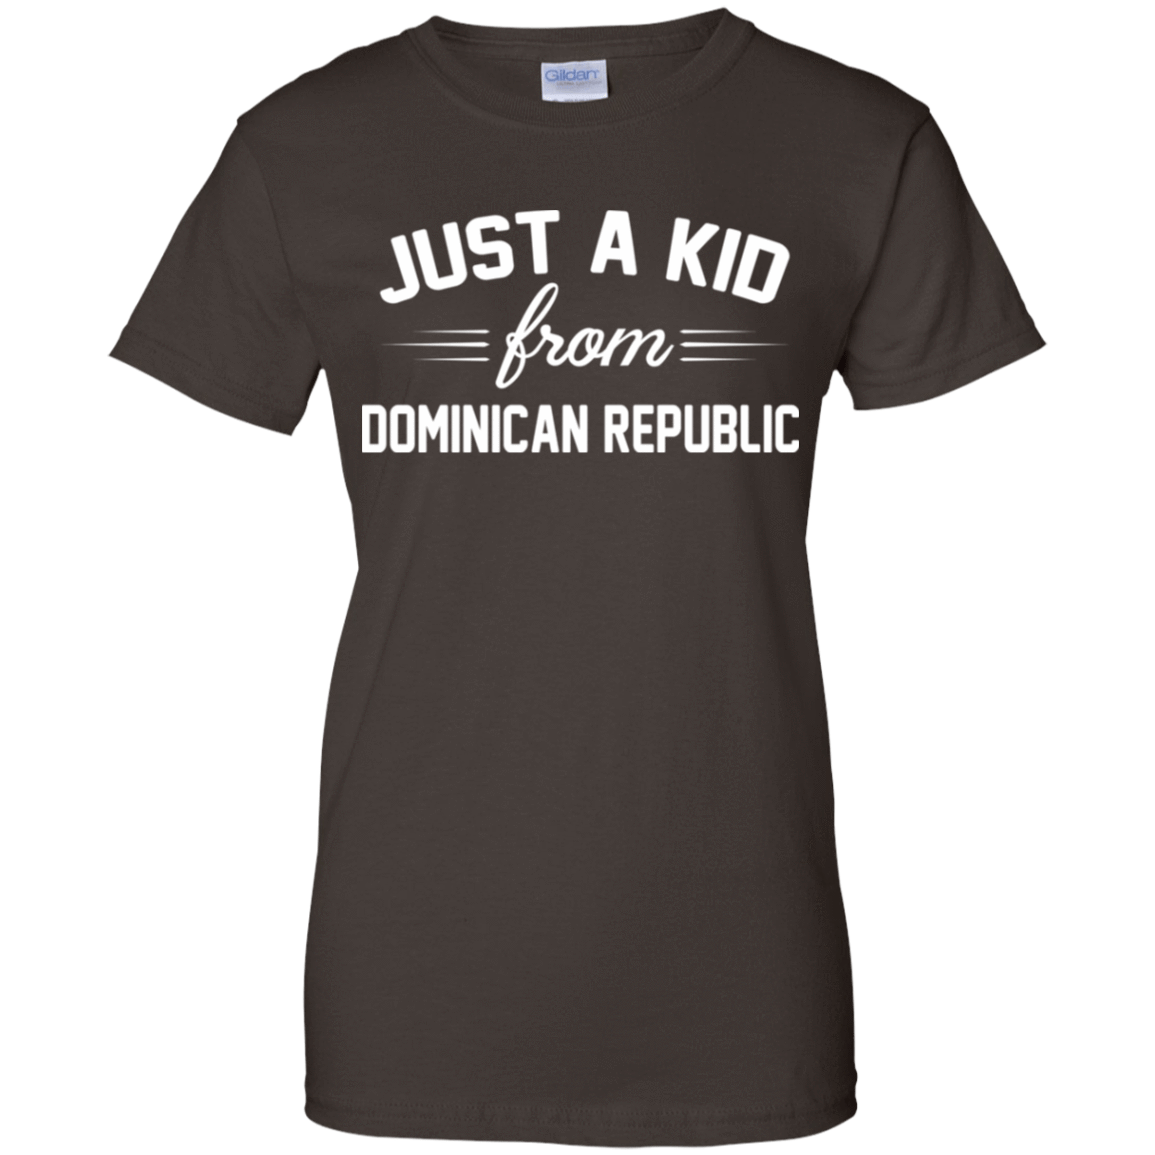 Just a Kid Store | Dominican Republic T-Shirts, Hoodie, Tank 939-9251-72092751-44702 - Tee Ript